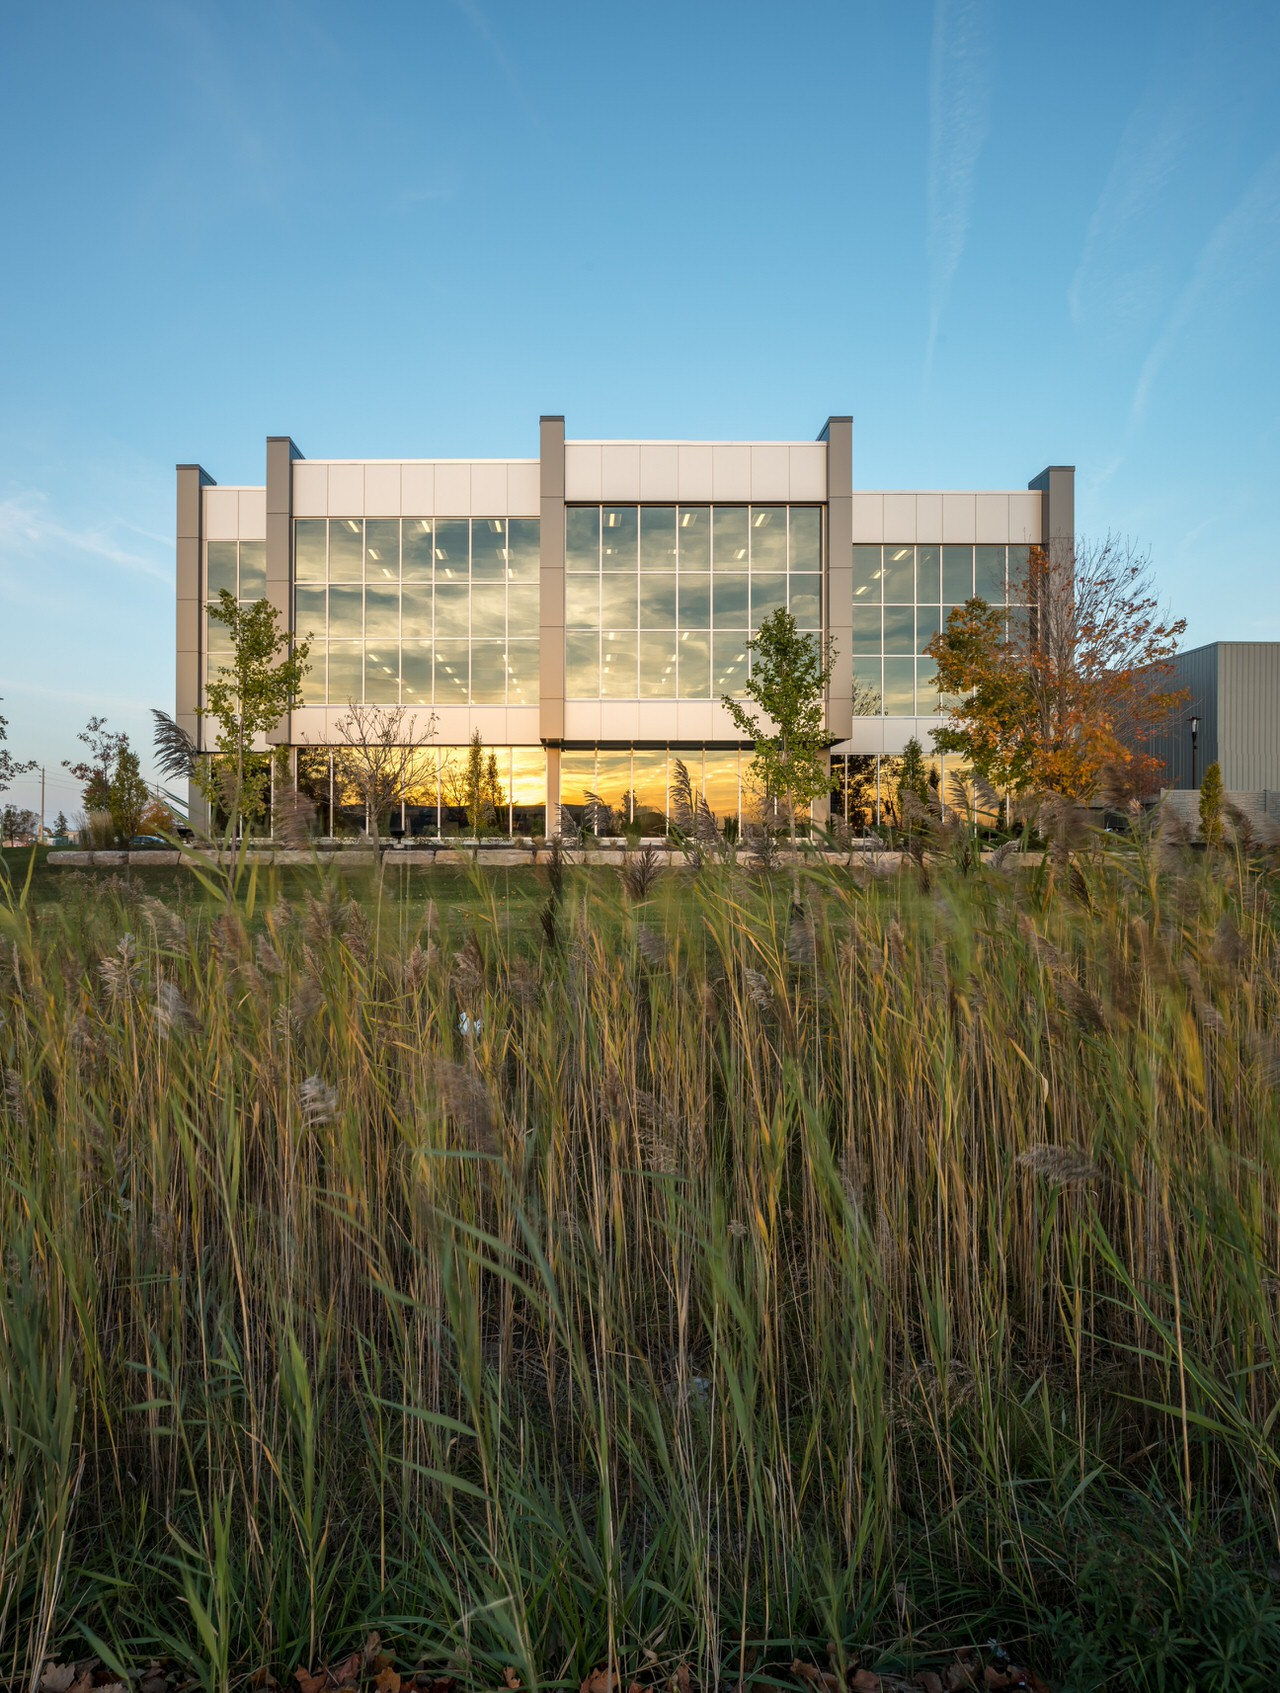 startech building modern architectural addition photo through grasses